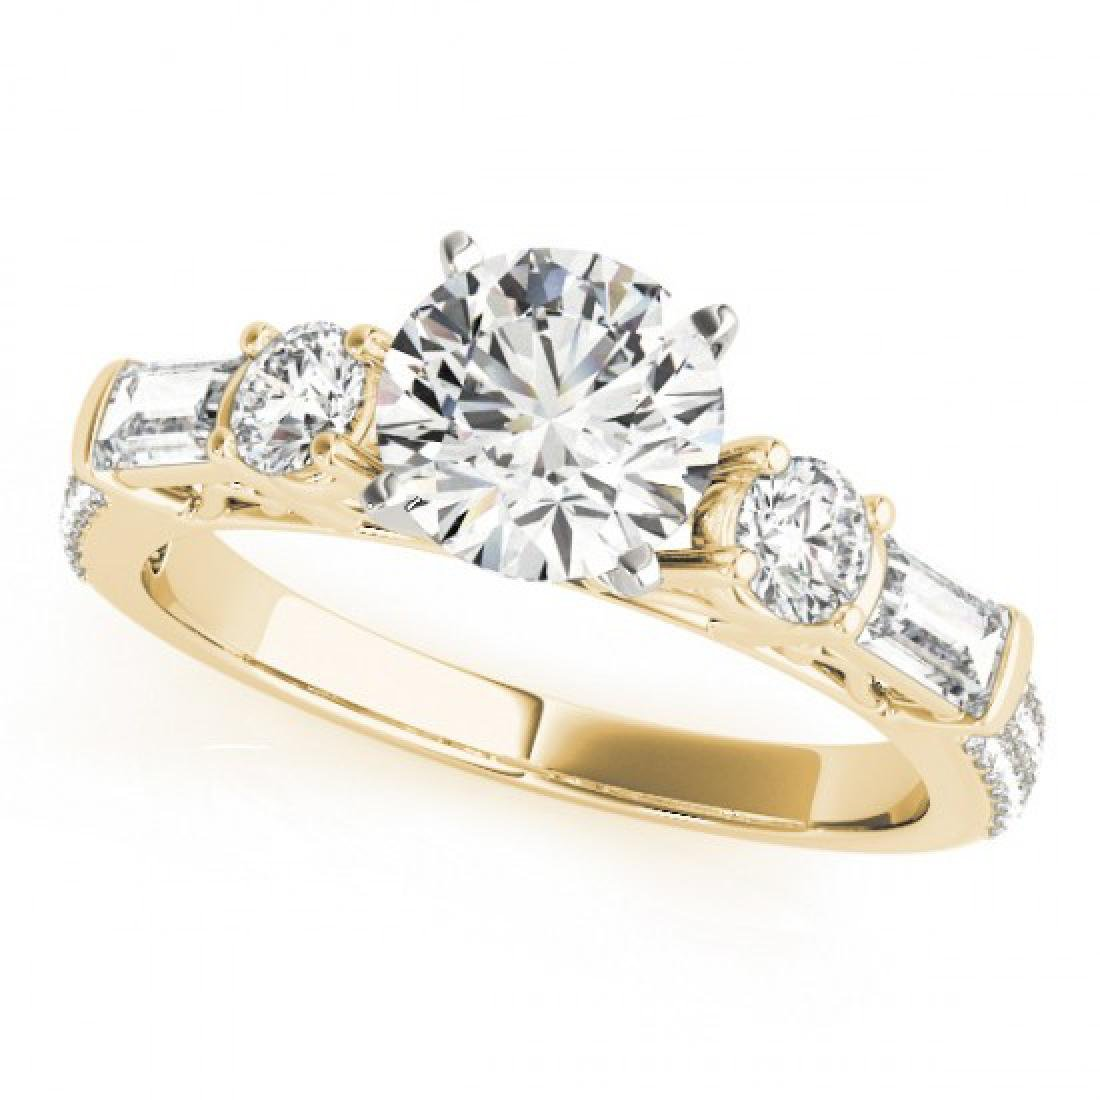 2.5 CTW Certified VS/SI Diamond Pave Solitaire Ring 14K - 2